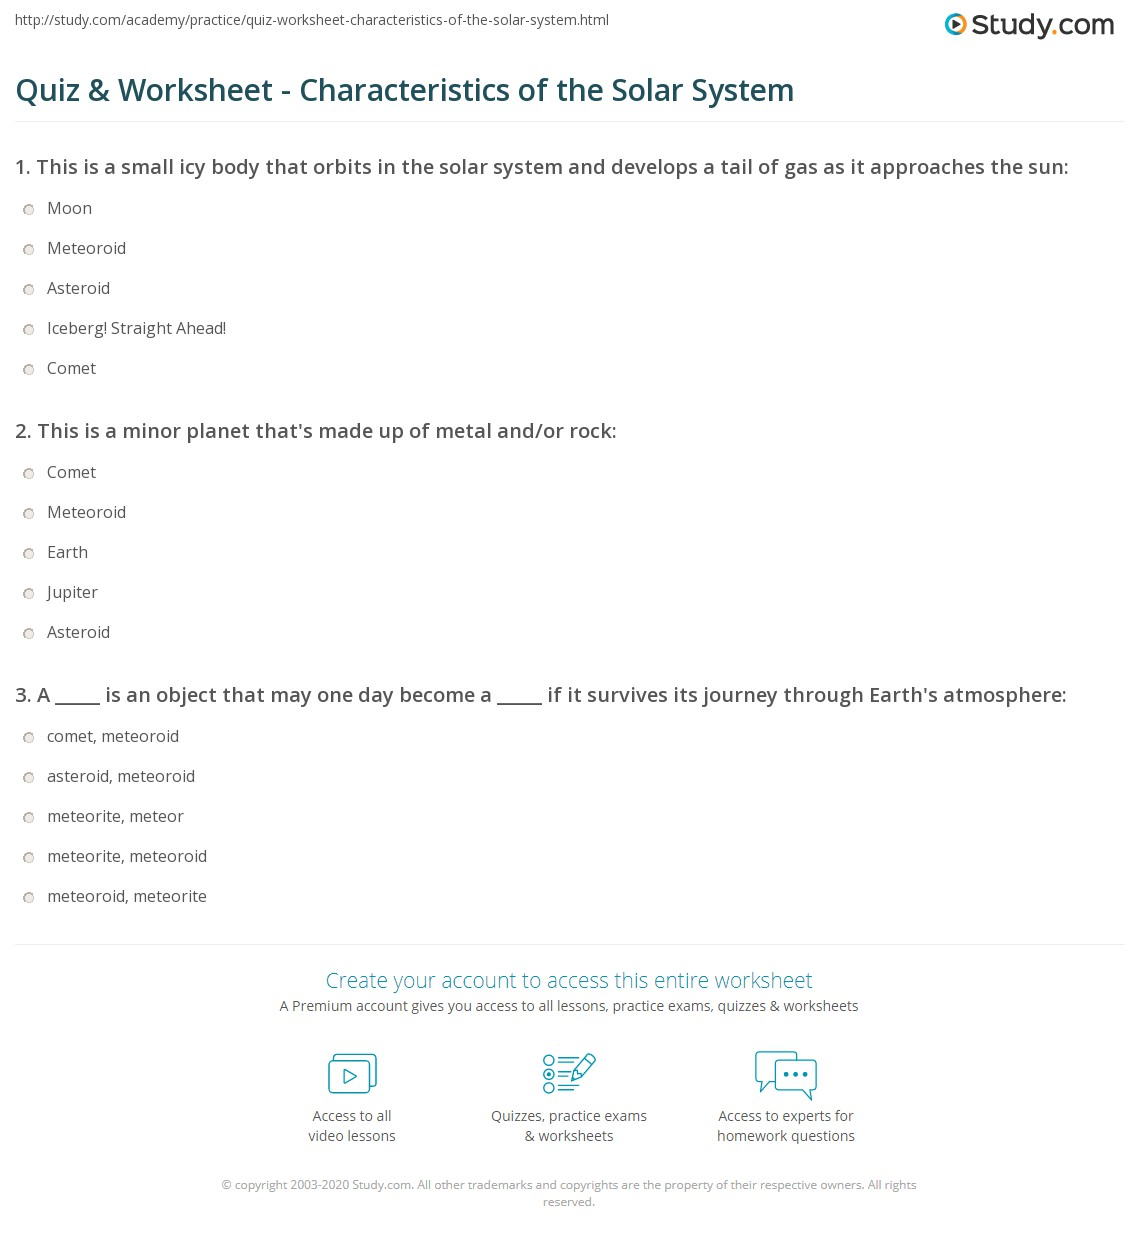 Quiz & Worksheet - Characteristics of the Solar System | Study.com